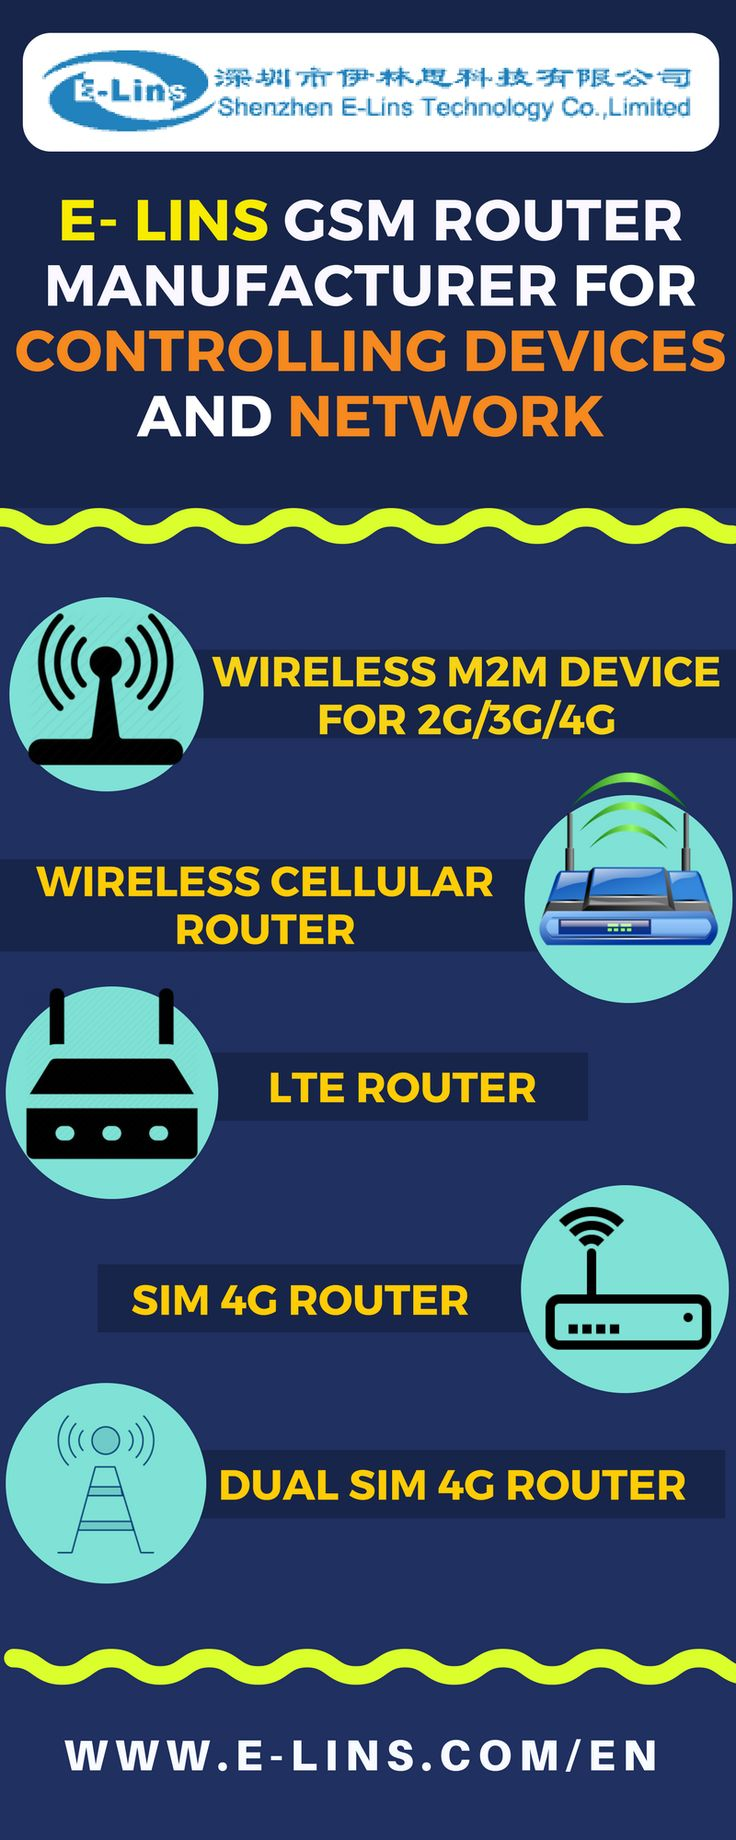 E-lins the best Manufacturer for Wireless M2M Solutions. Get a wide range of routers, modems for homes and business. Visit e-lins.com/EN/ now for modem, router features, specification and model list.